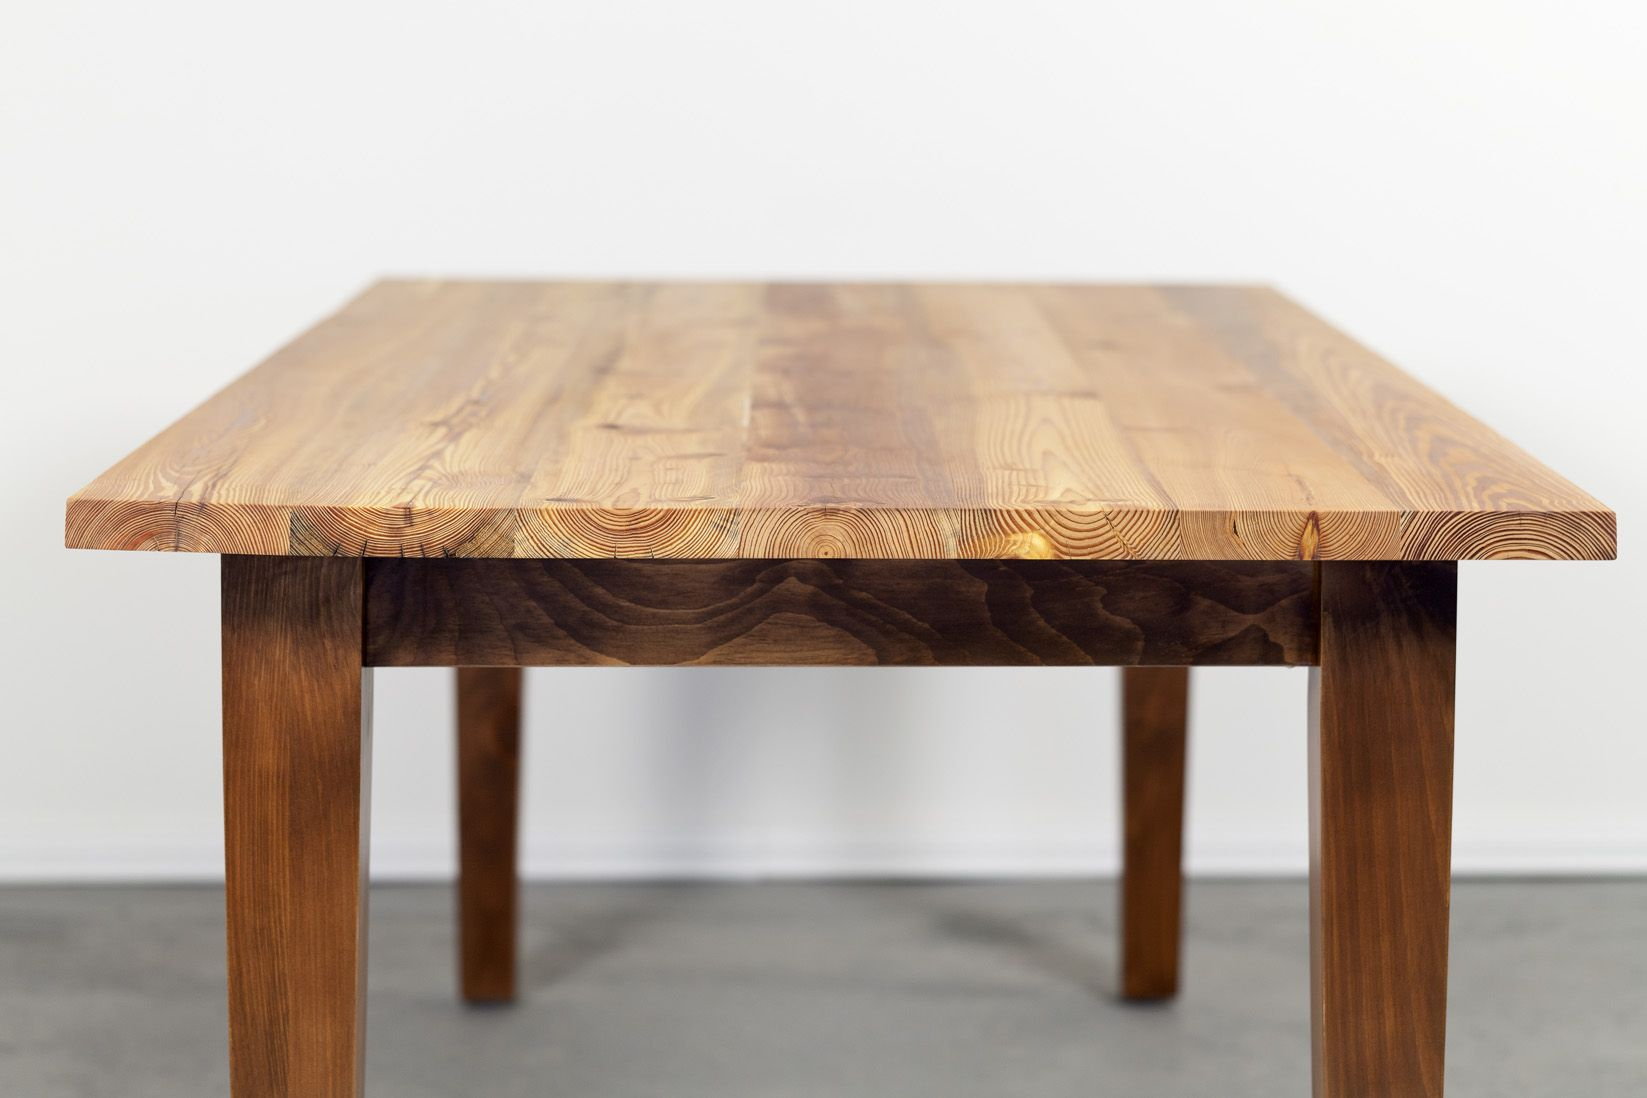 Pictures Of Saw Marks On Old Dinning Room Table